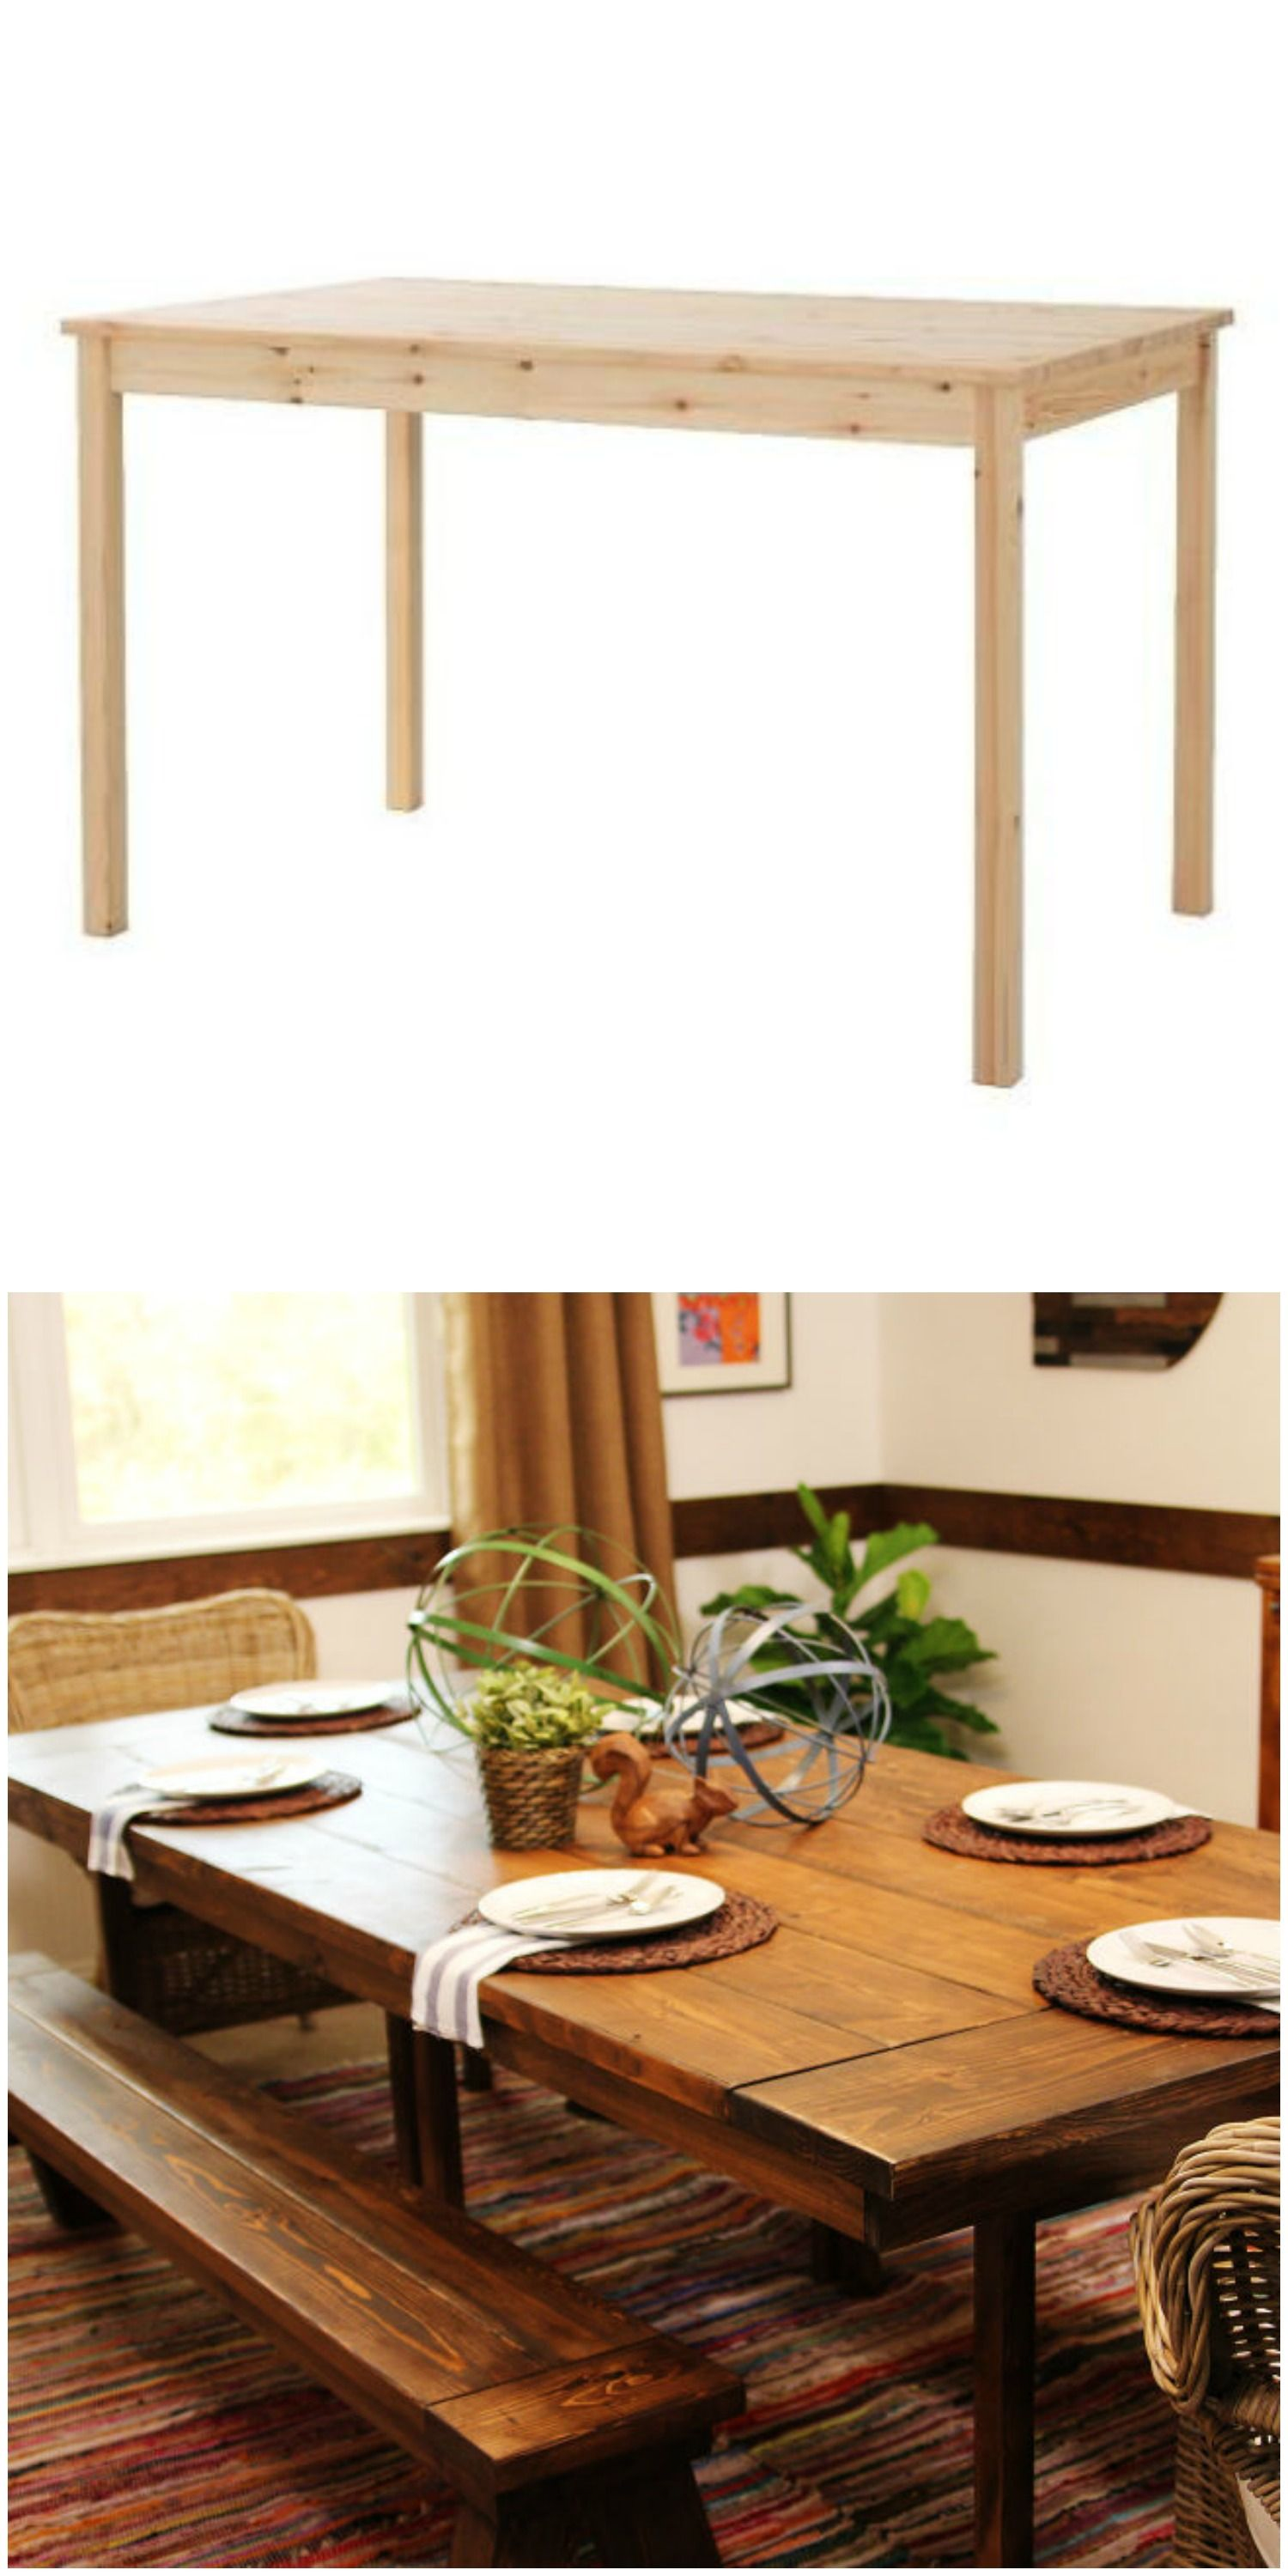 These 37 Ikea Product Hacks Are So Brilliant You Ll Want To Try Them Asap Ikea Dining Table Hack Ikea Dining Table Ikea Dining